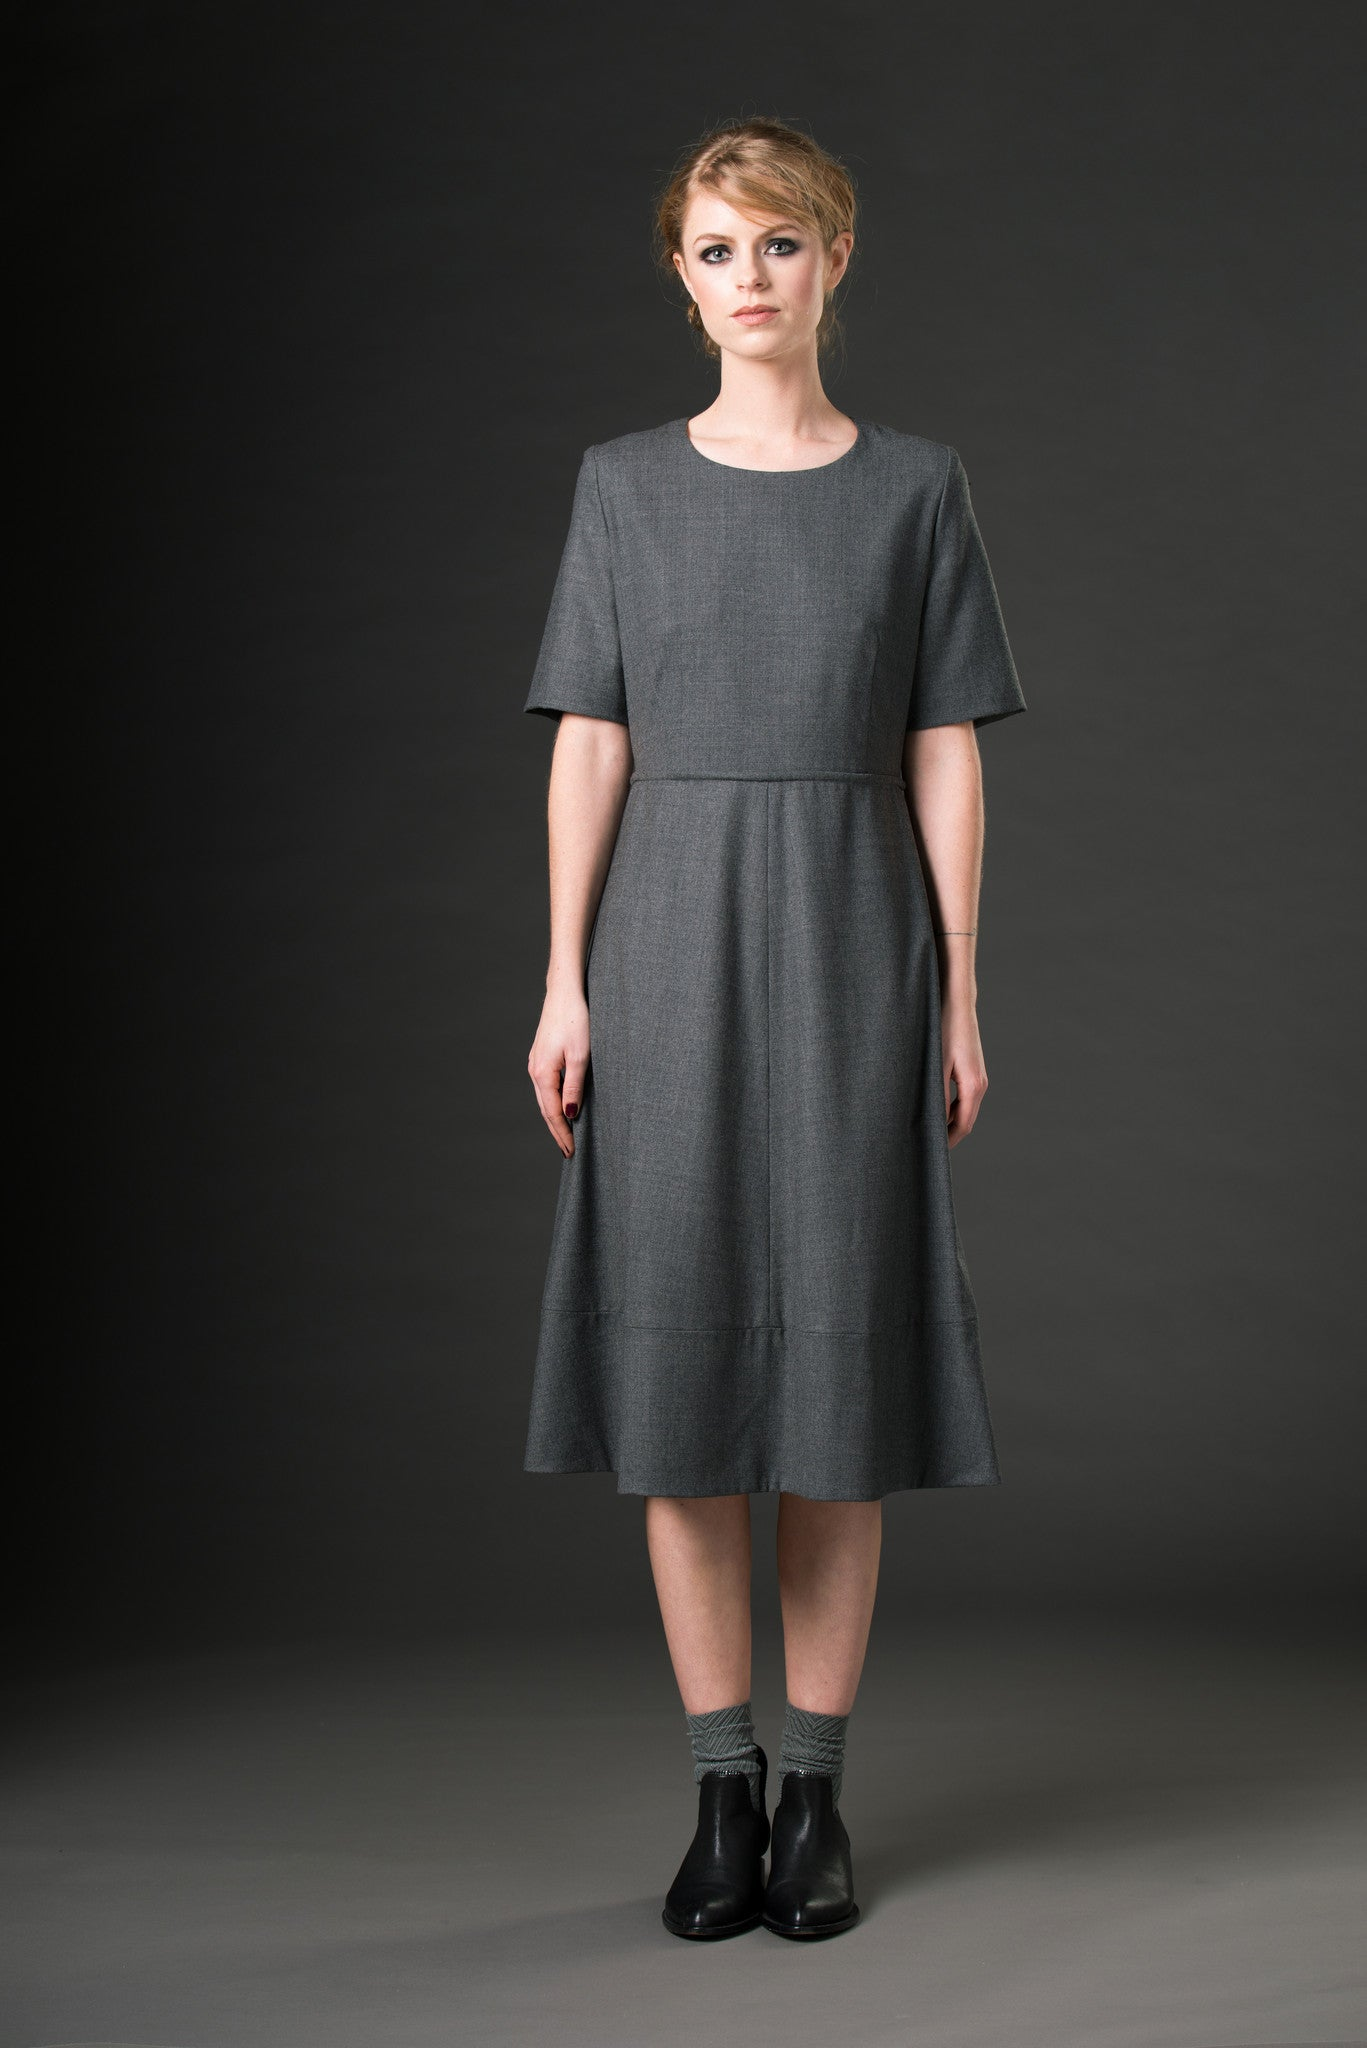 Charlotte Dress - grey flannel